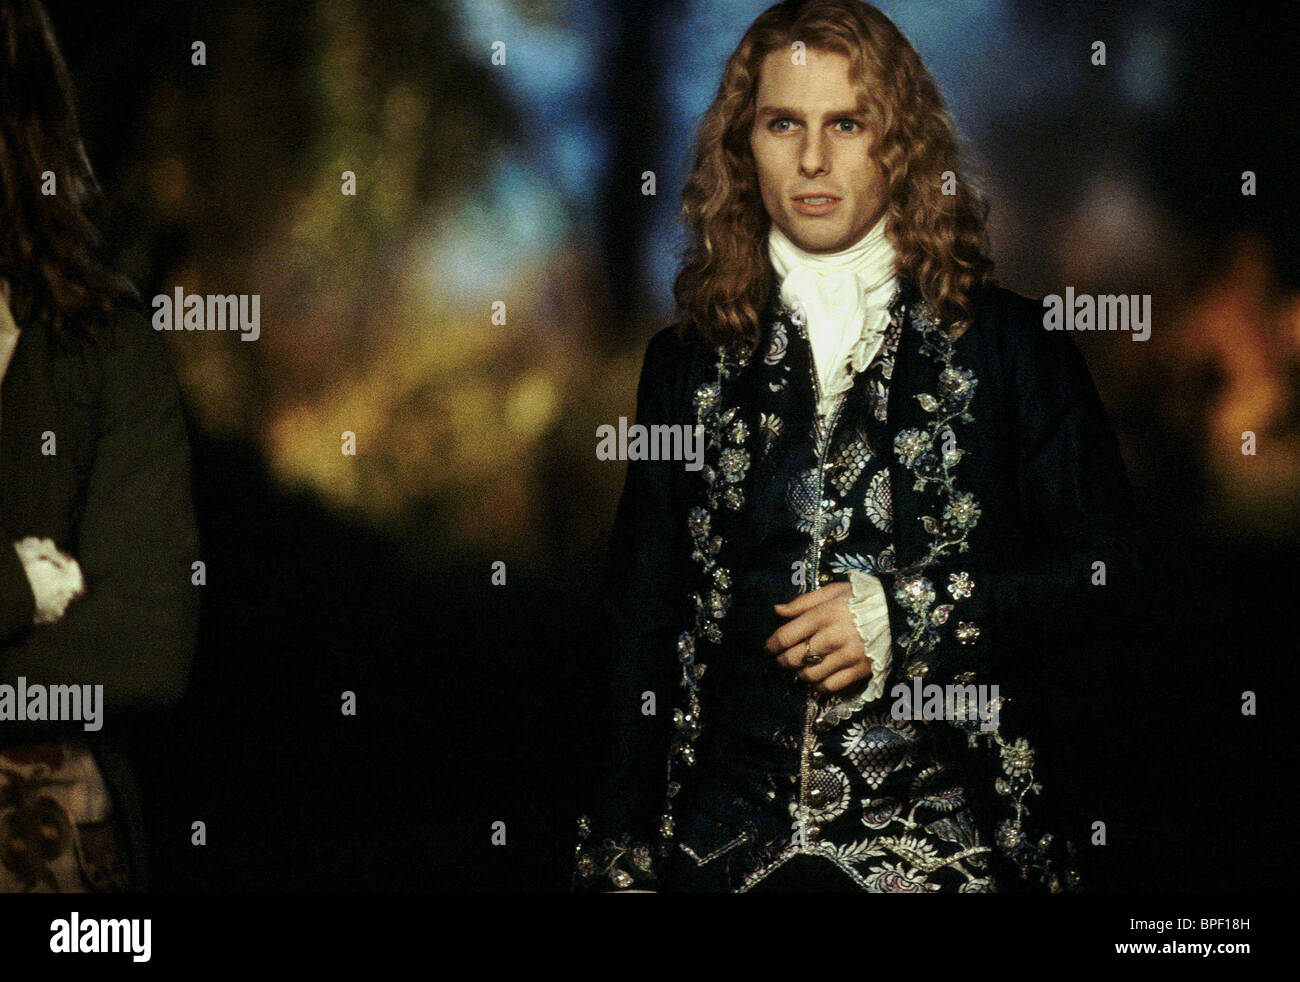 Download Film Interview With The Vampire The Vampire Chronicles 1994